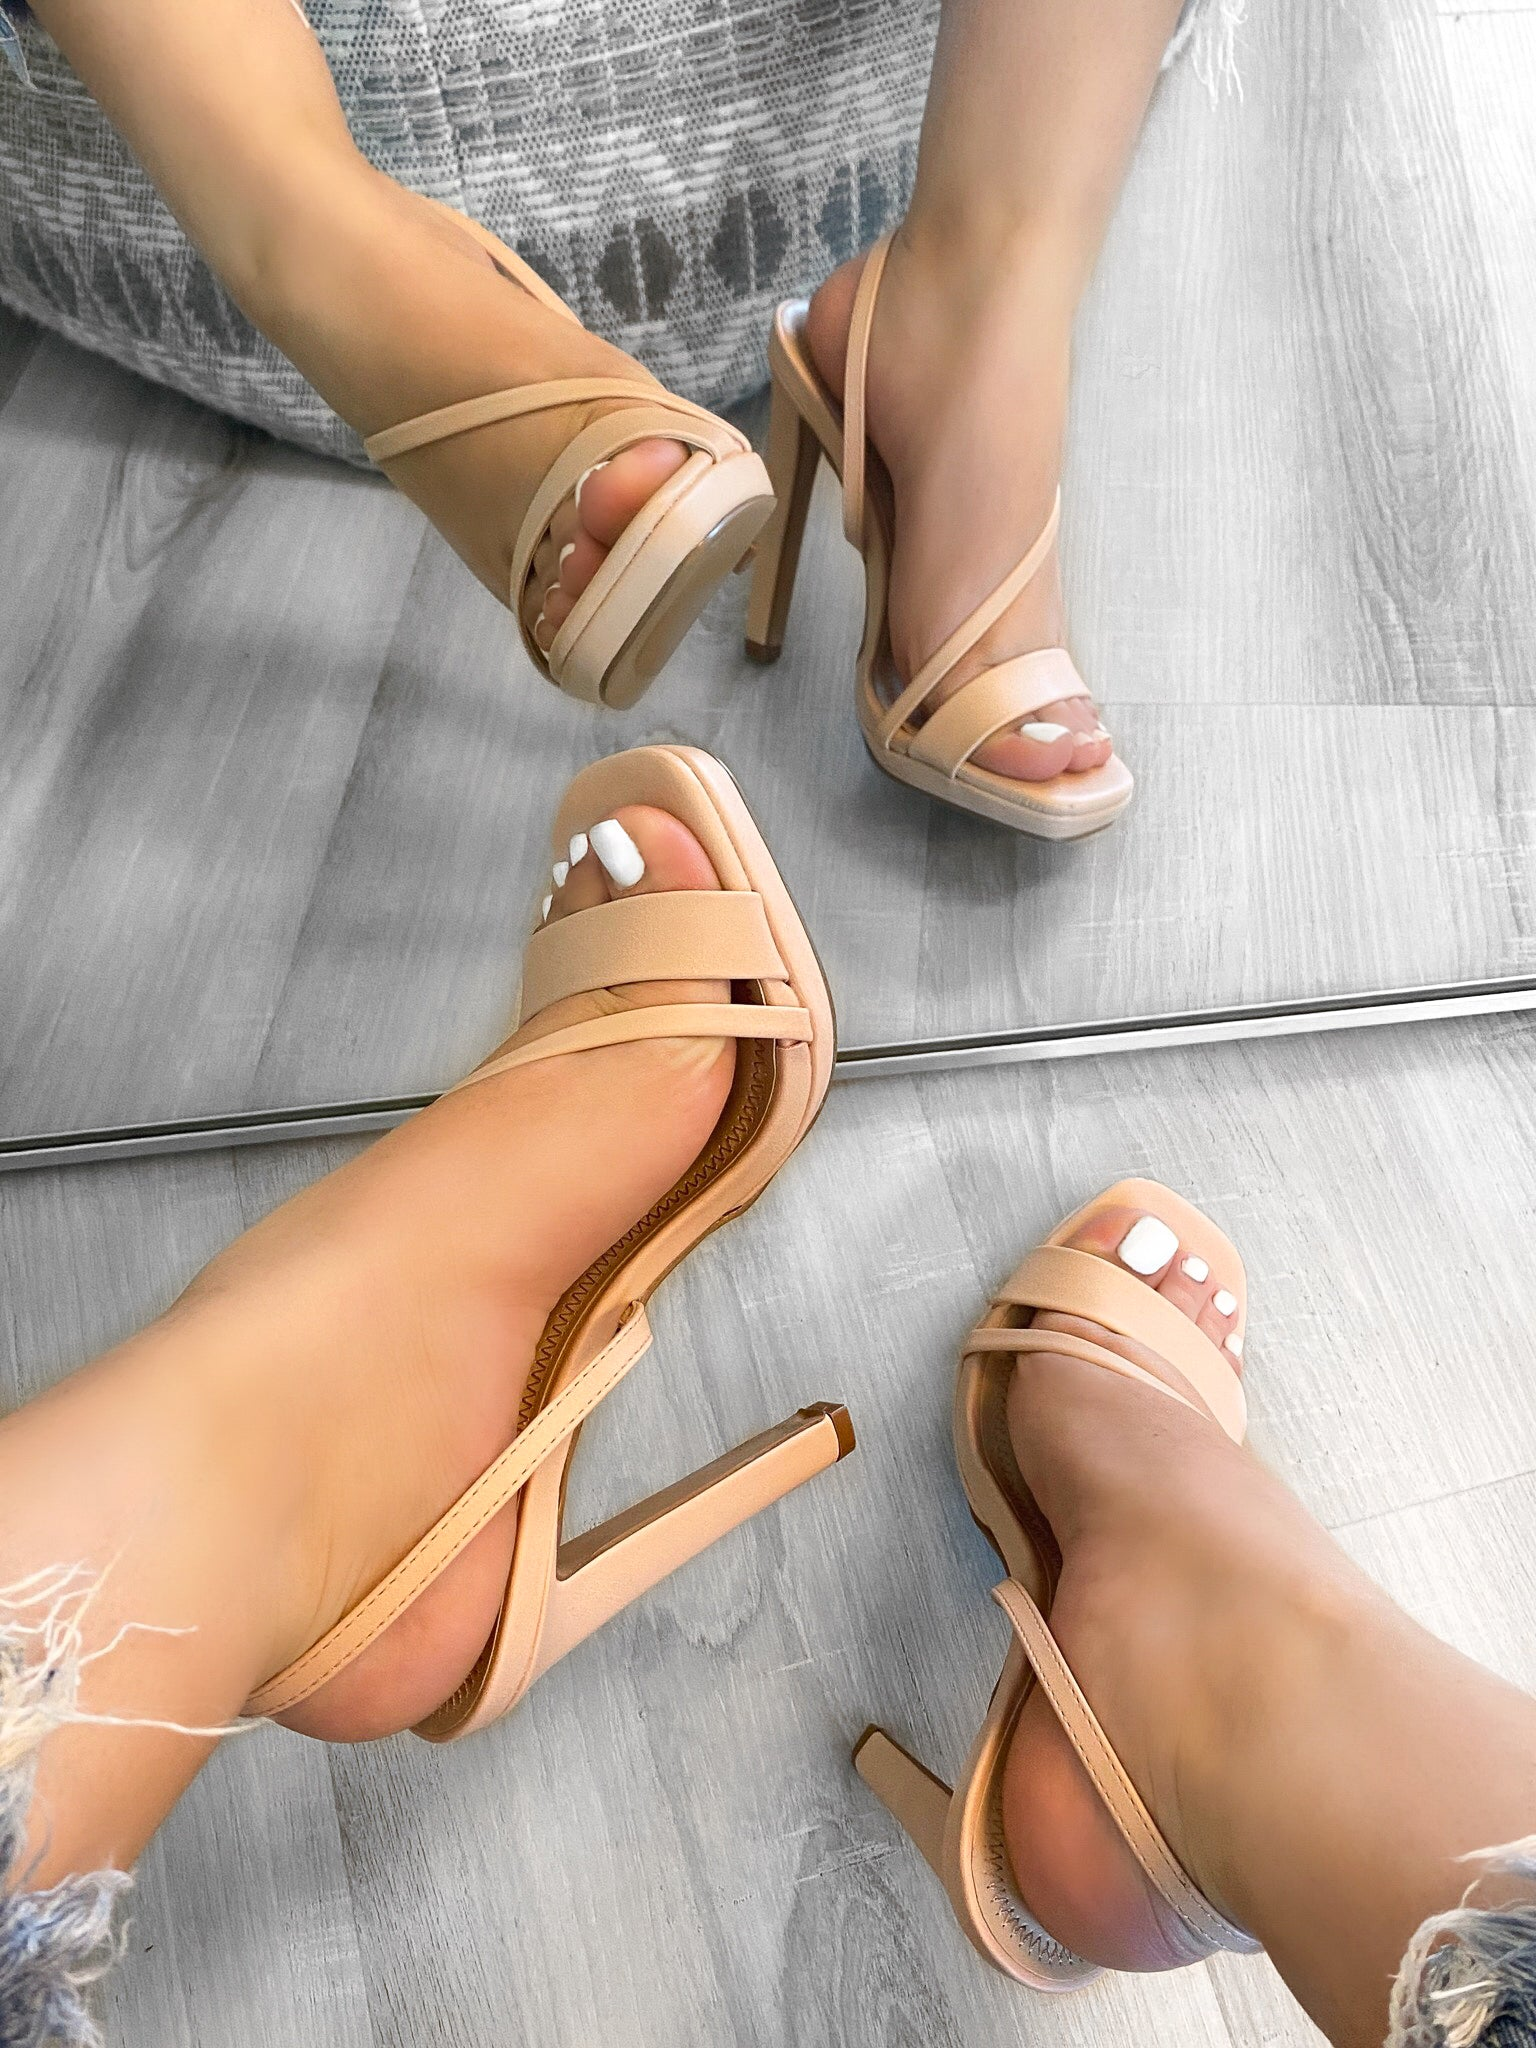 nude heels, strappy heels, leather heels